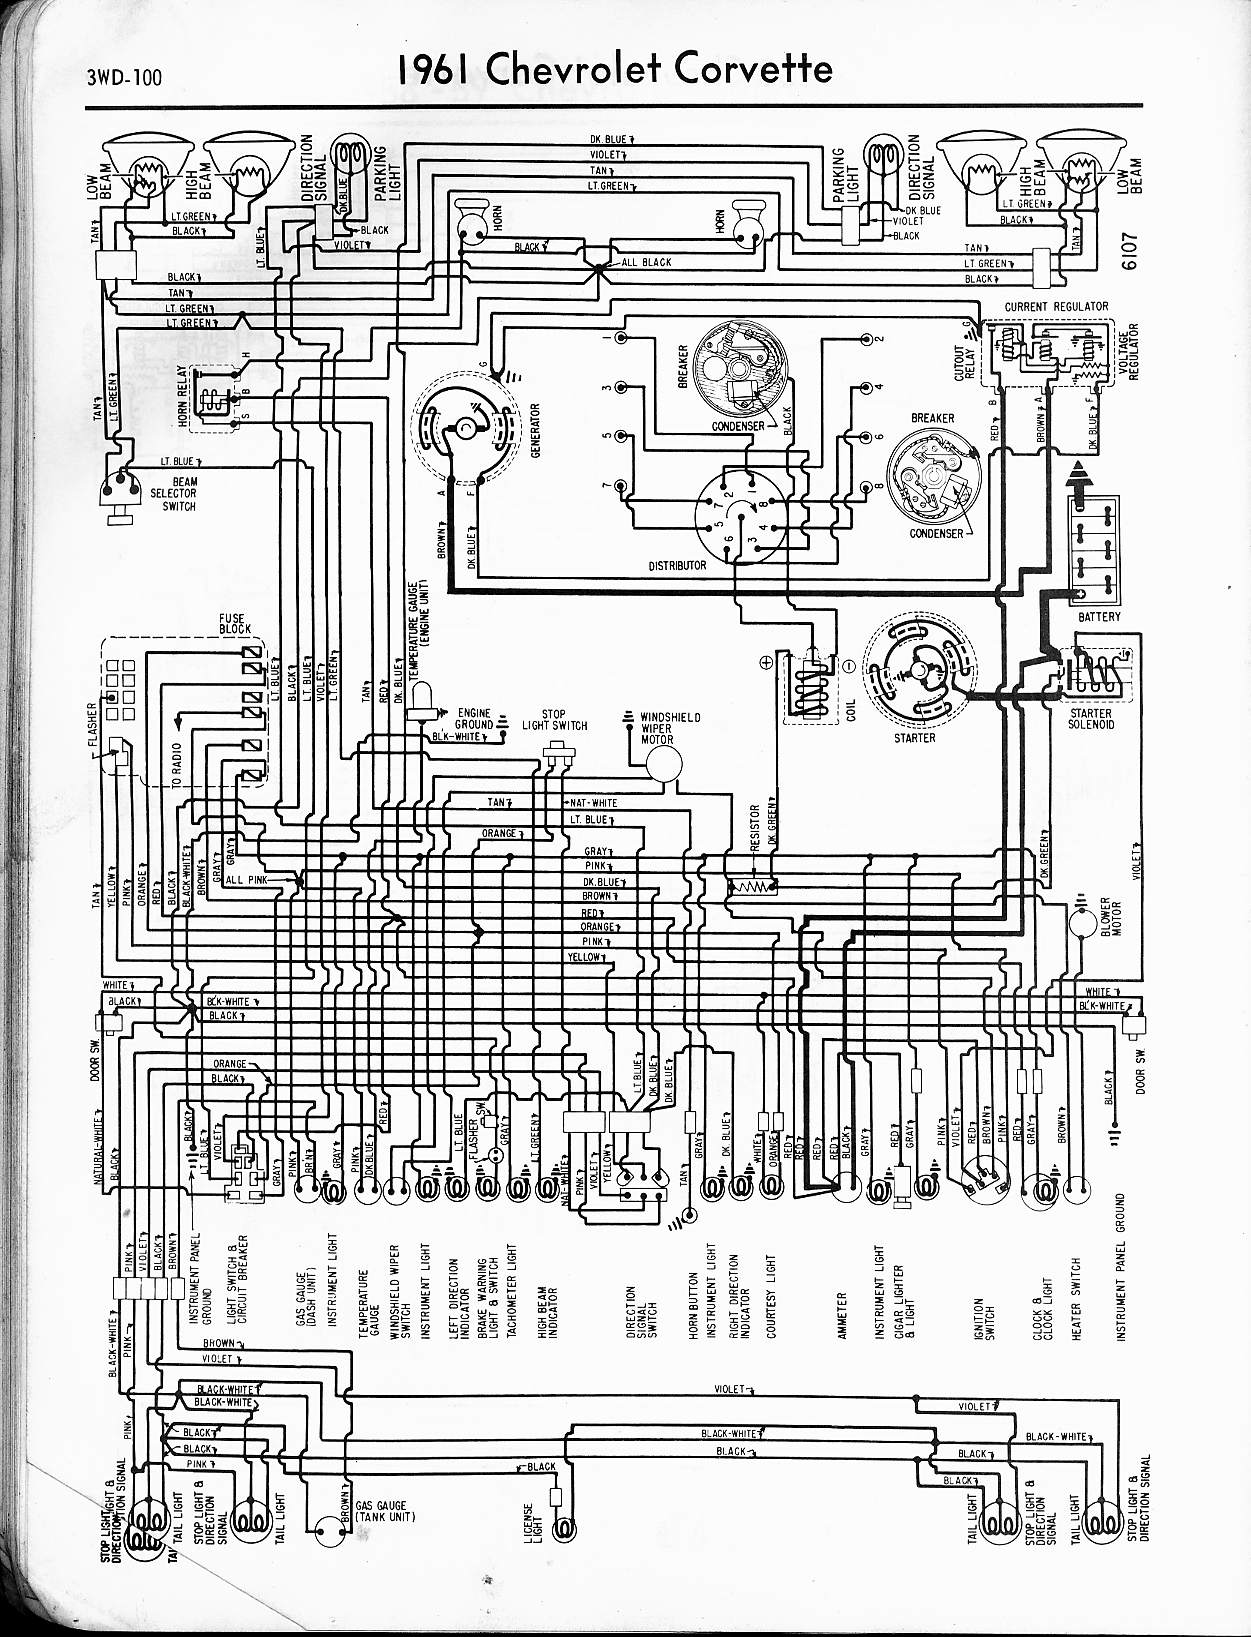 corvette wiring diagrams online circuit wiring diagram u2022 rh electrobuddha co uk 1988 corvette maf wiring diagram 1988 corvette maf wiring diagram